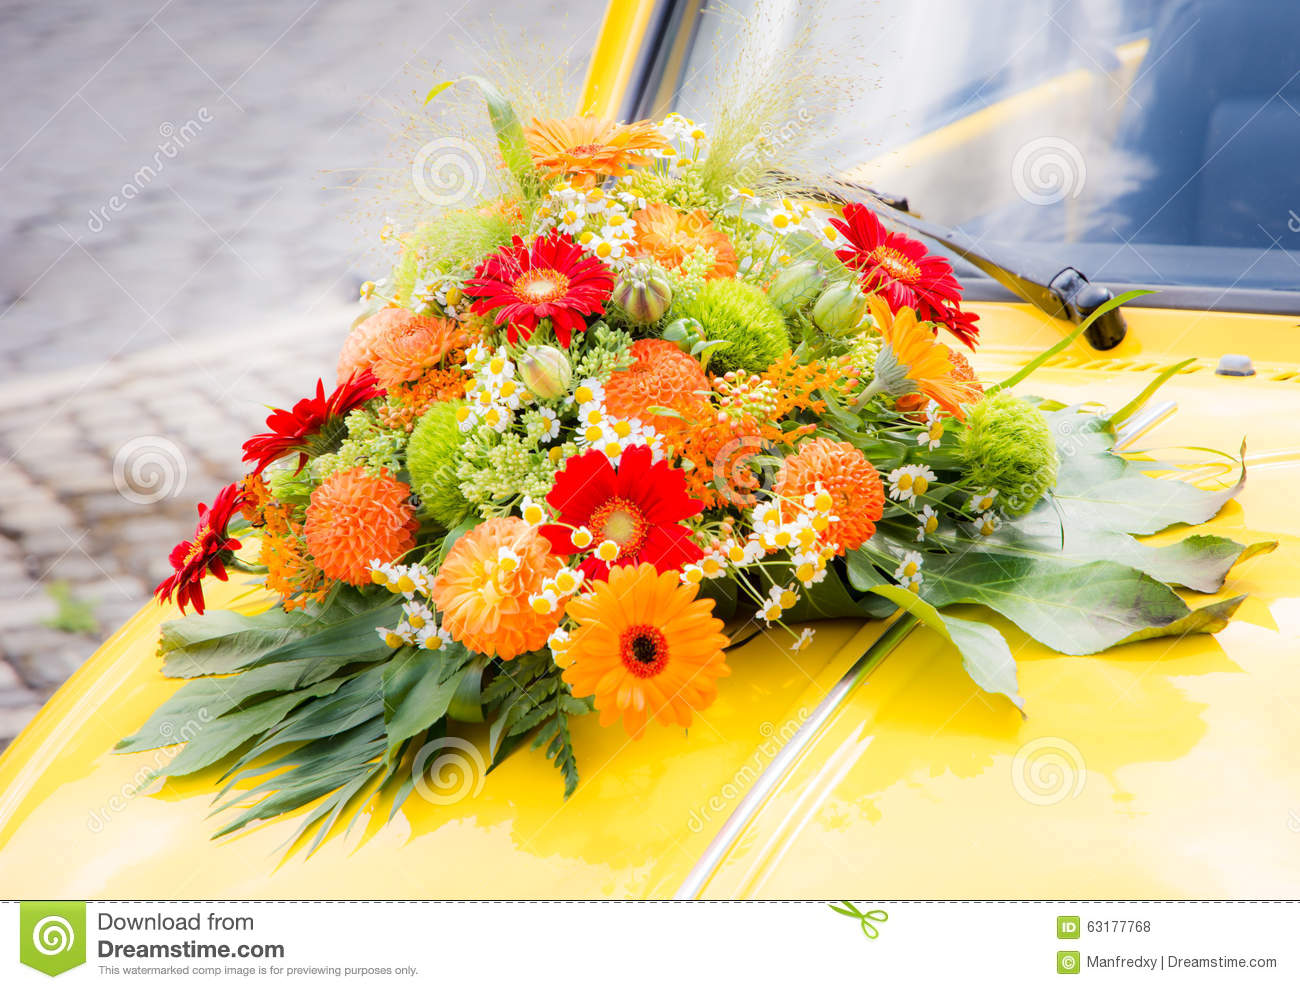 Bridal Bouquet On A Yellow Wedding Car Stock Photo Image Of